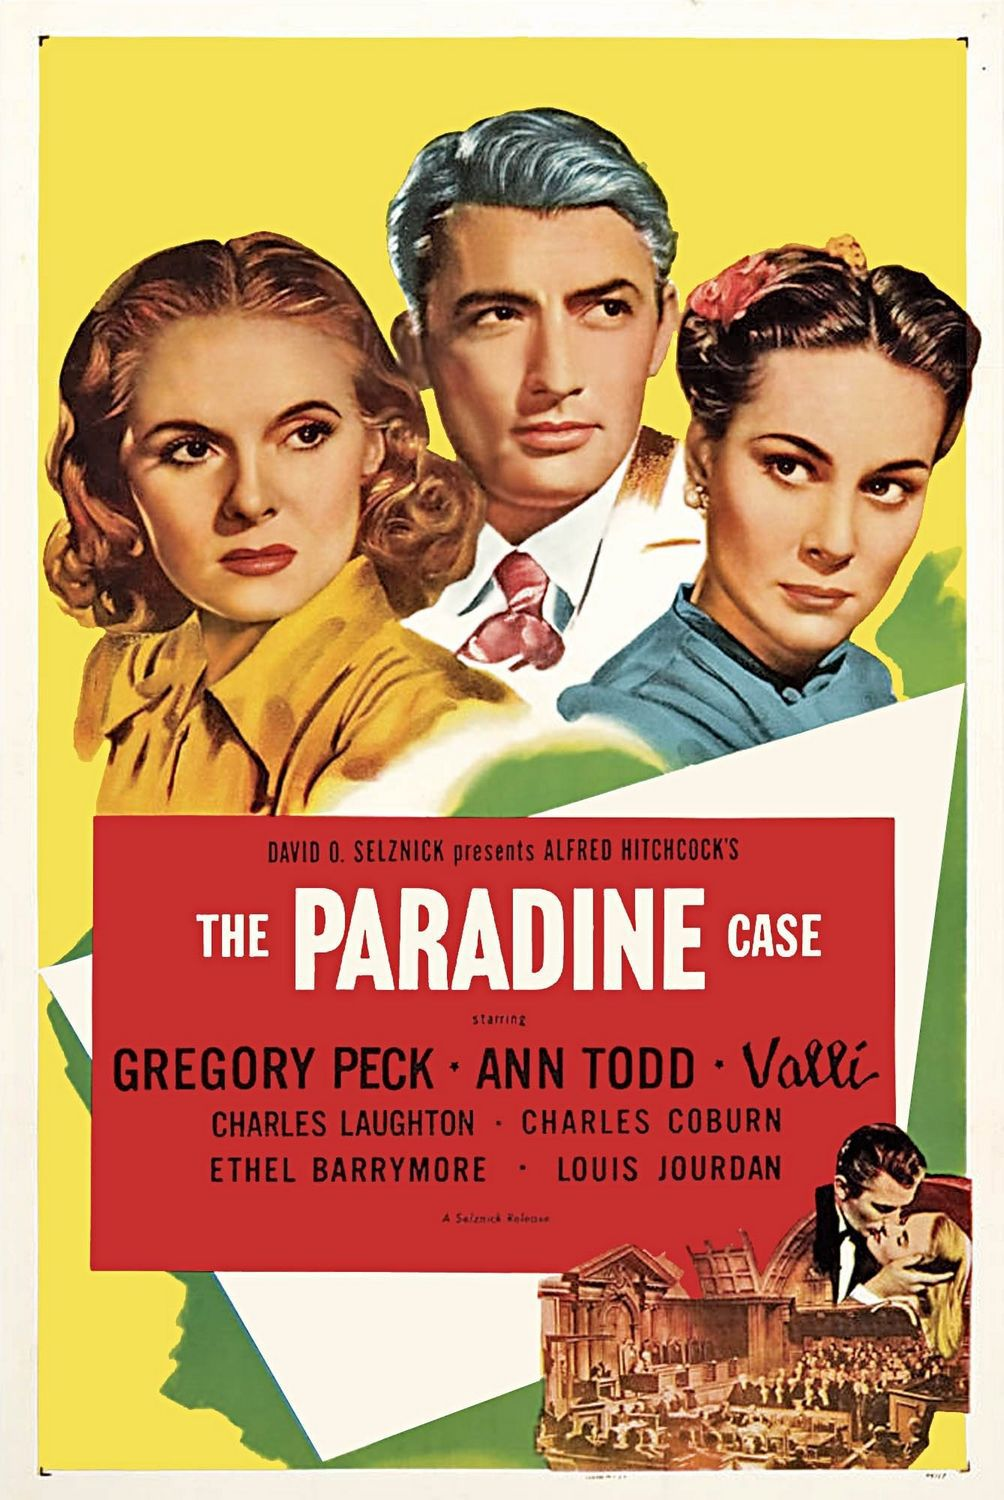 Paradine Case (1974) - classic cult film poster Gregory Peck